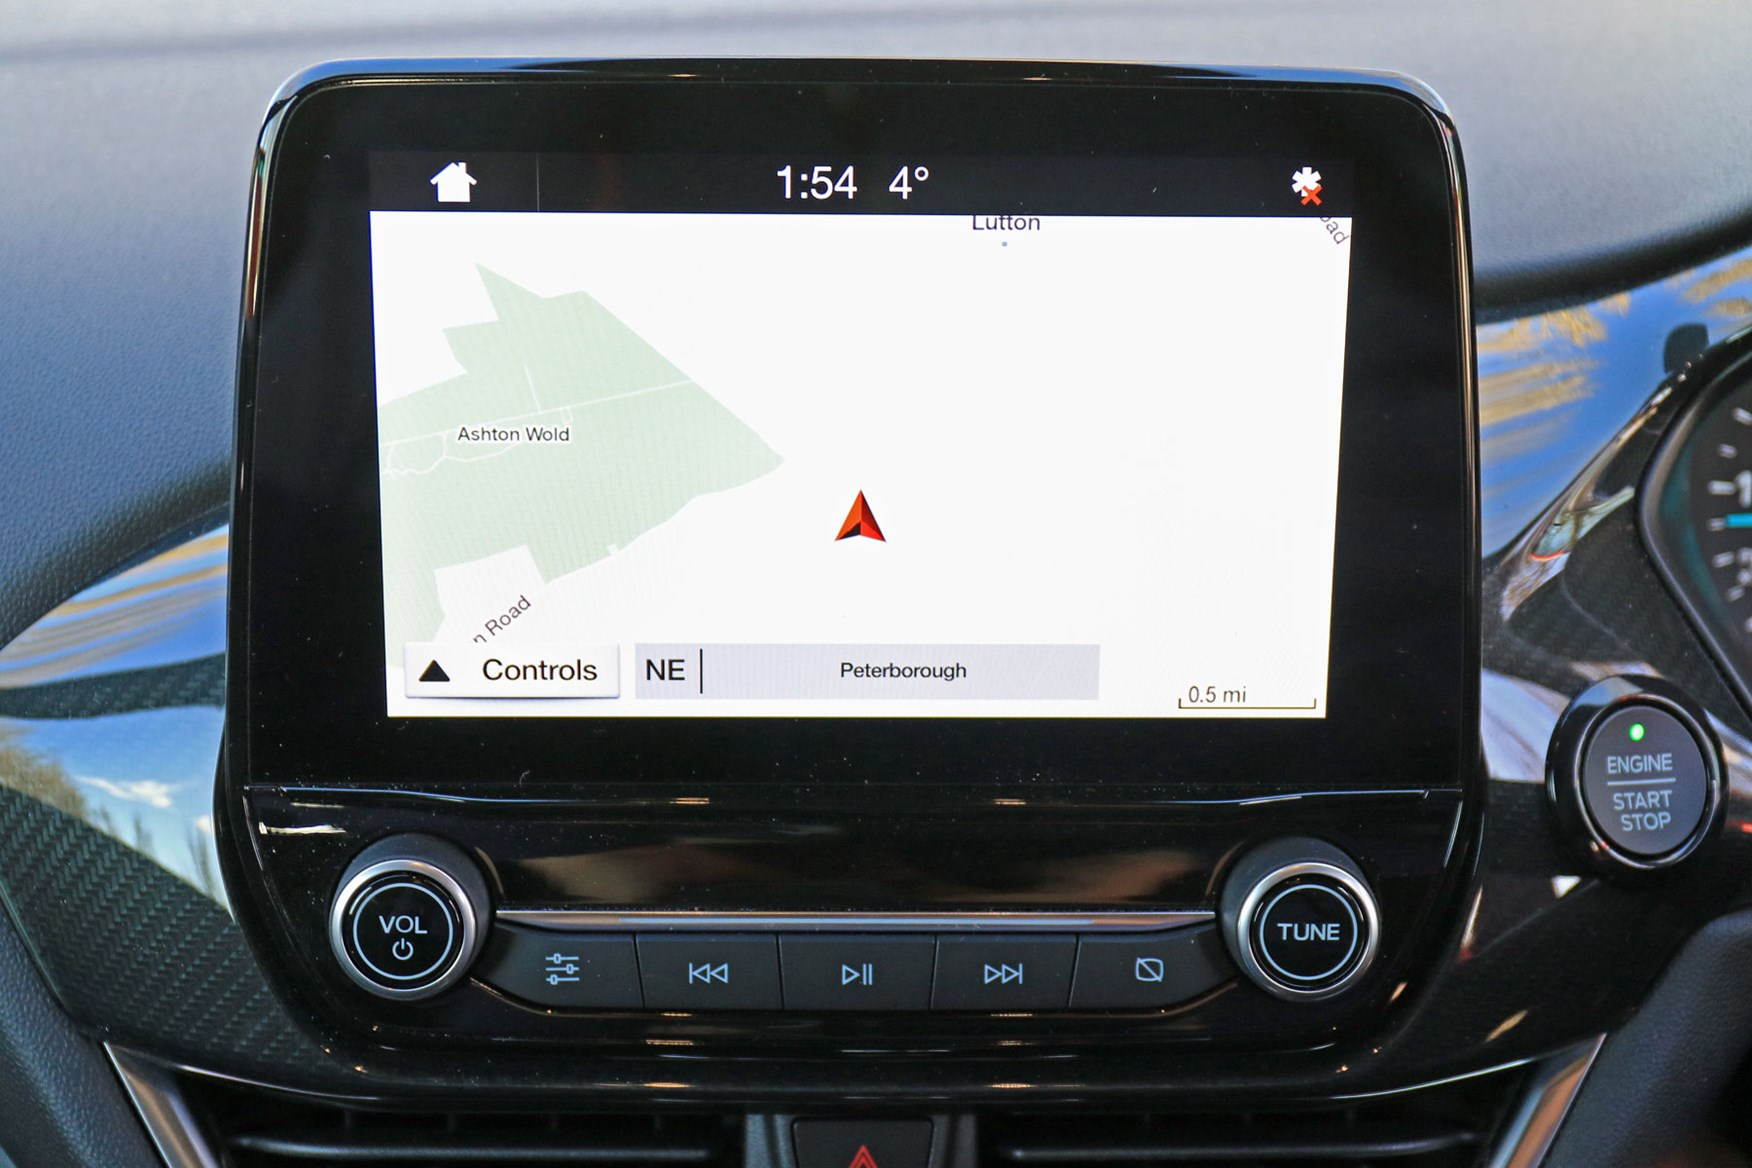 Ford Fiesta Sport Van review - Ford Sync touchscreen